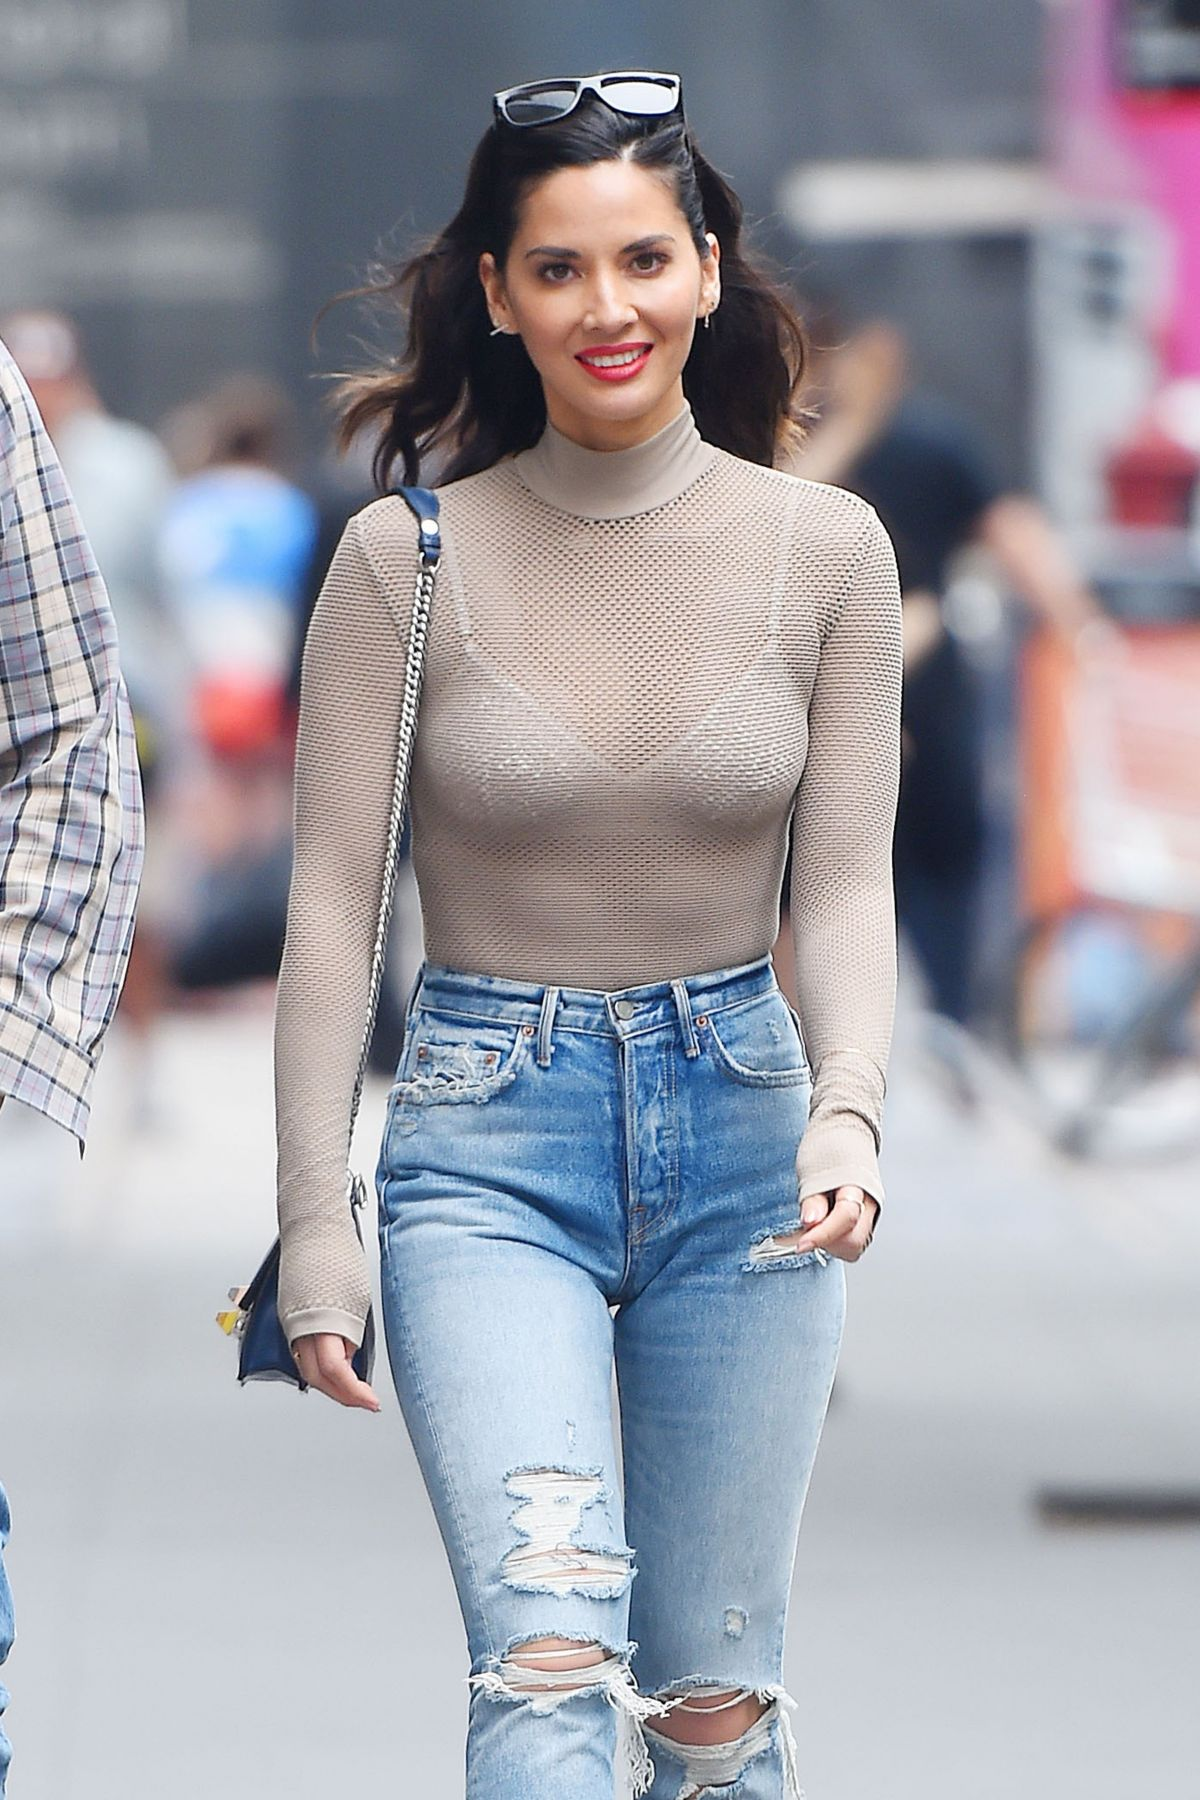 OLIVIA MUNN in Jeans Out and About in New York 06/16/2017